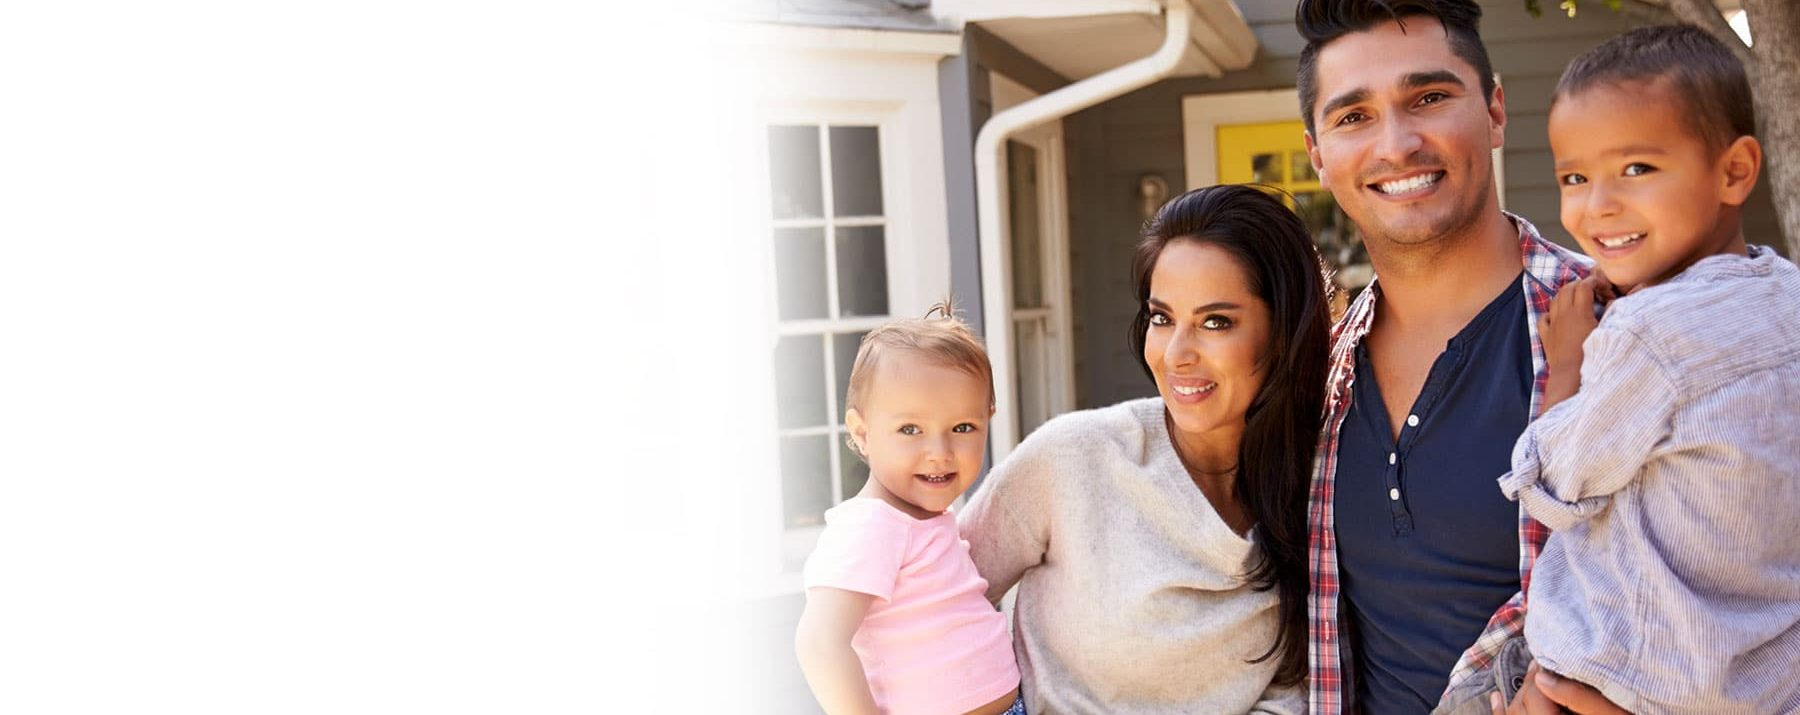 WE ARE AN URGENT CARE CENTER YOU CAN TRUST FOR YOURSELF AND YOUR CHILDREN